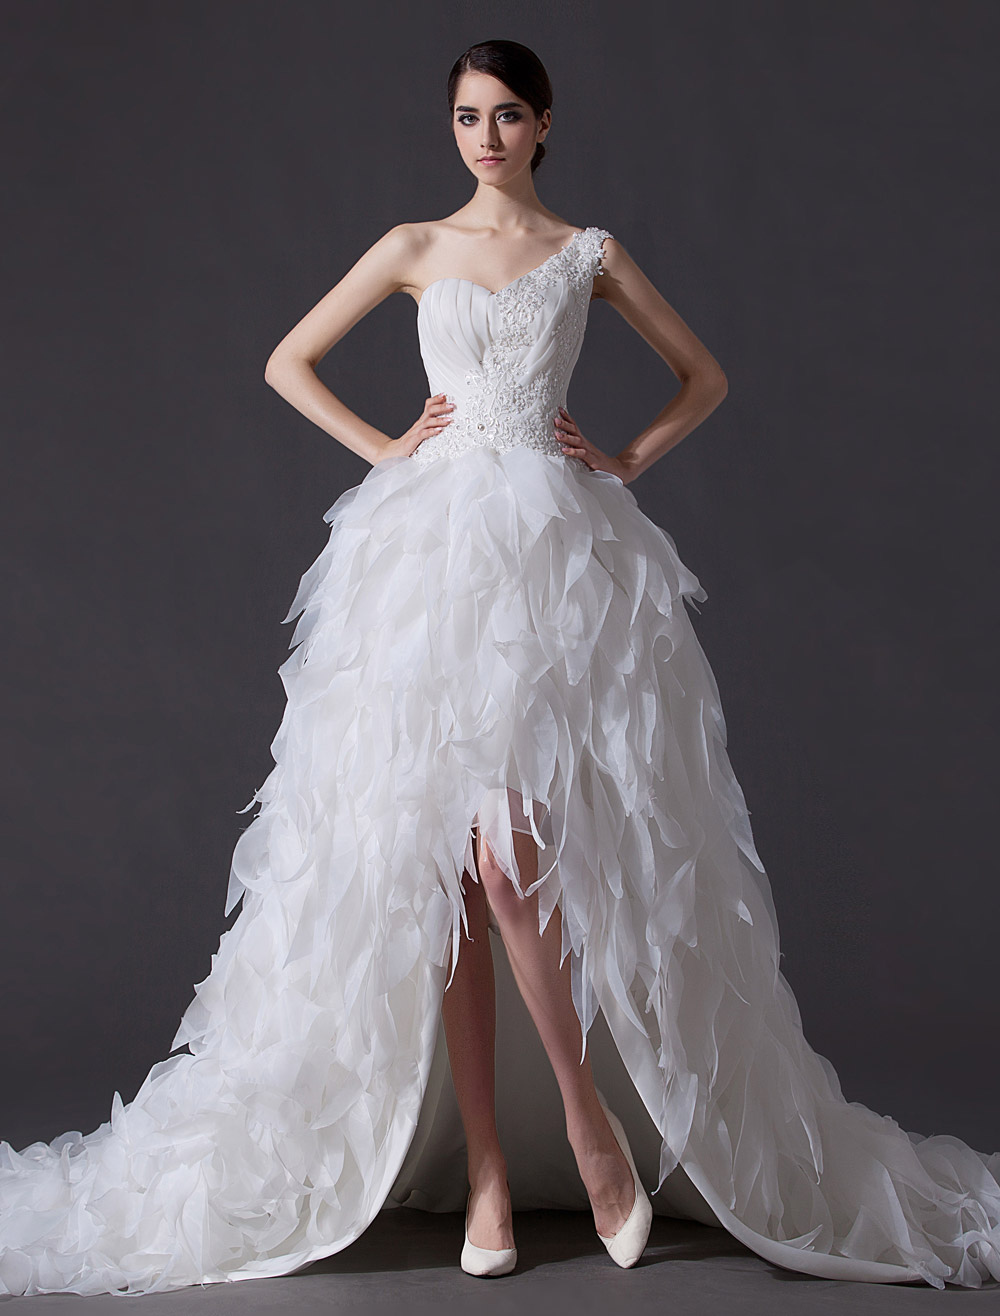 modern ideas of feather wedding gowns feathered wedding dress Romantic feather chunks wedding gown